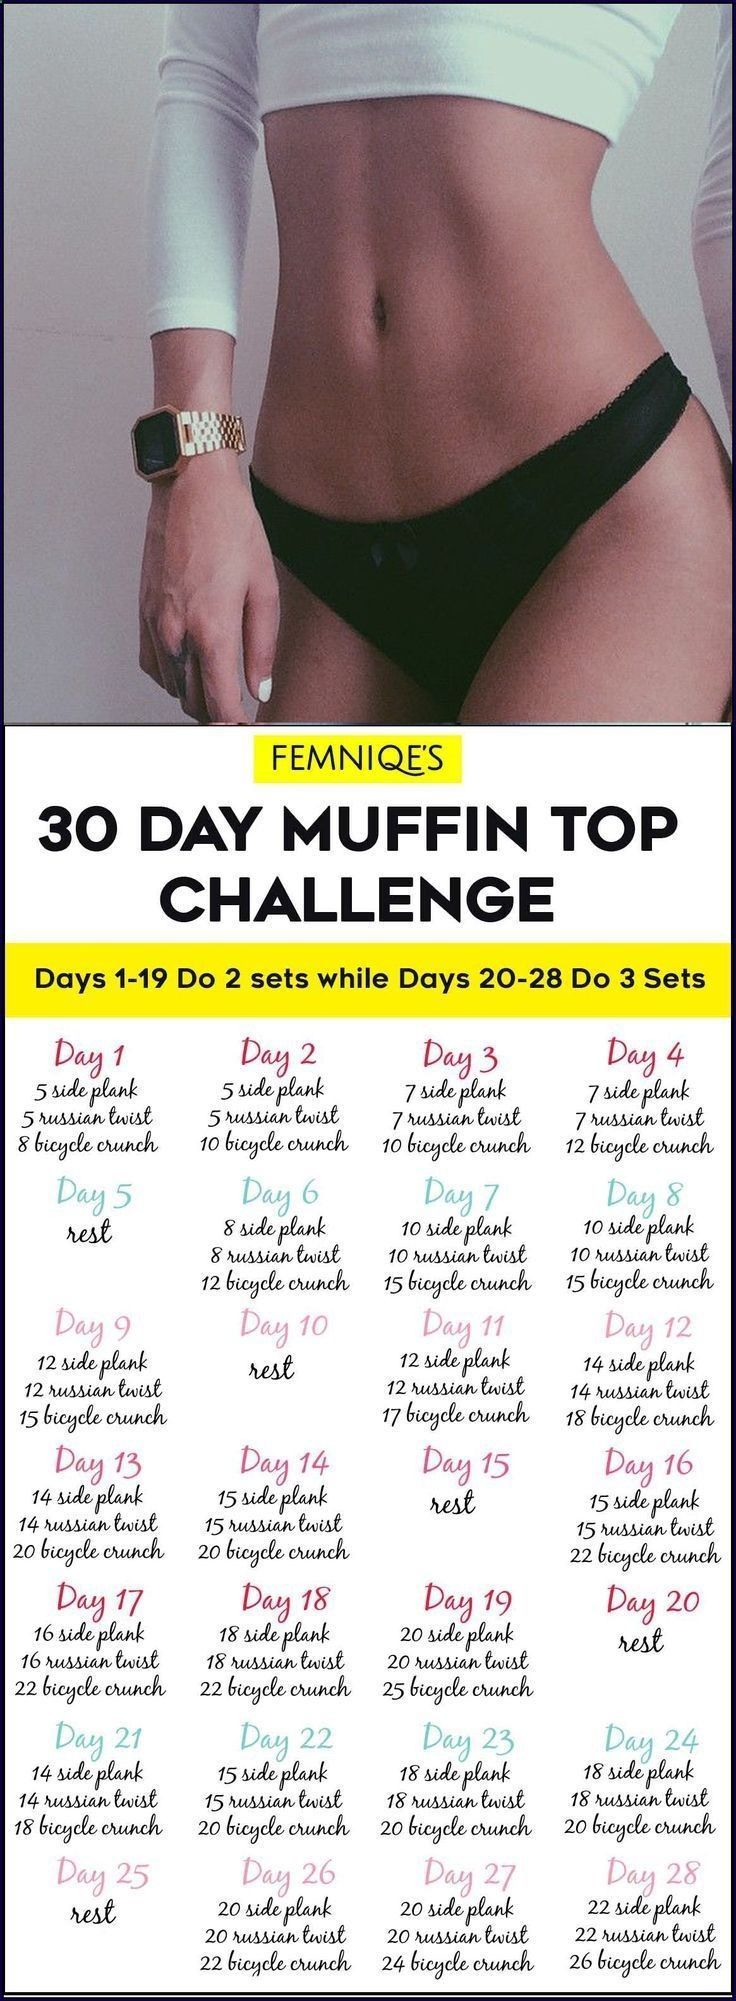 3 Week Diet Loss Weight 30 Day Muffin Top Challenge Workout/Exercise Calendar Love Handles - This 30 Day Muffin Top Challenge will help you get a smaller waist showing your true curves! THE 3 WEEK DIET is a revolutionary new diet system that not only guarantees to help you lose weight — it promises to help you lose more weight — all body fat — faster than anything else you've ever tried.